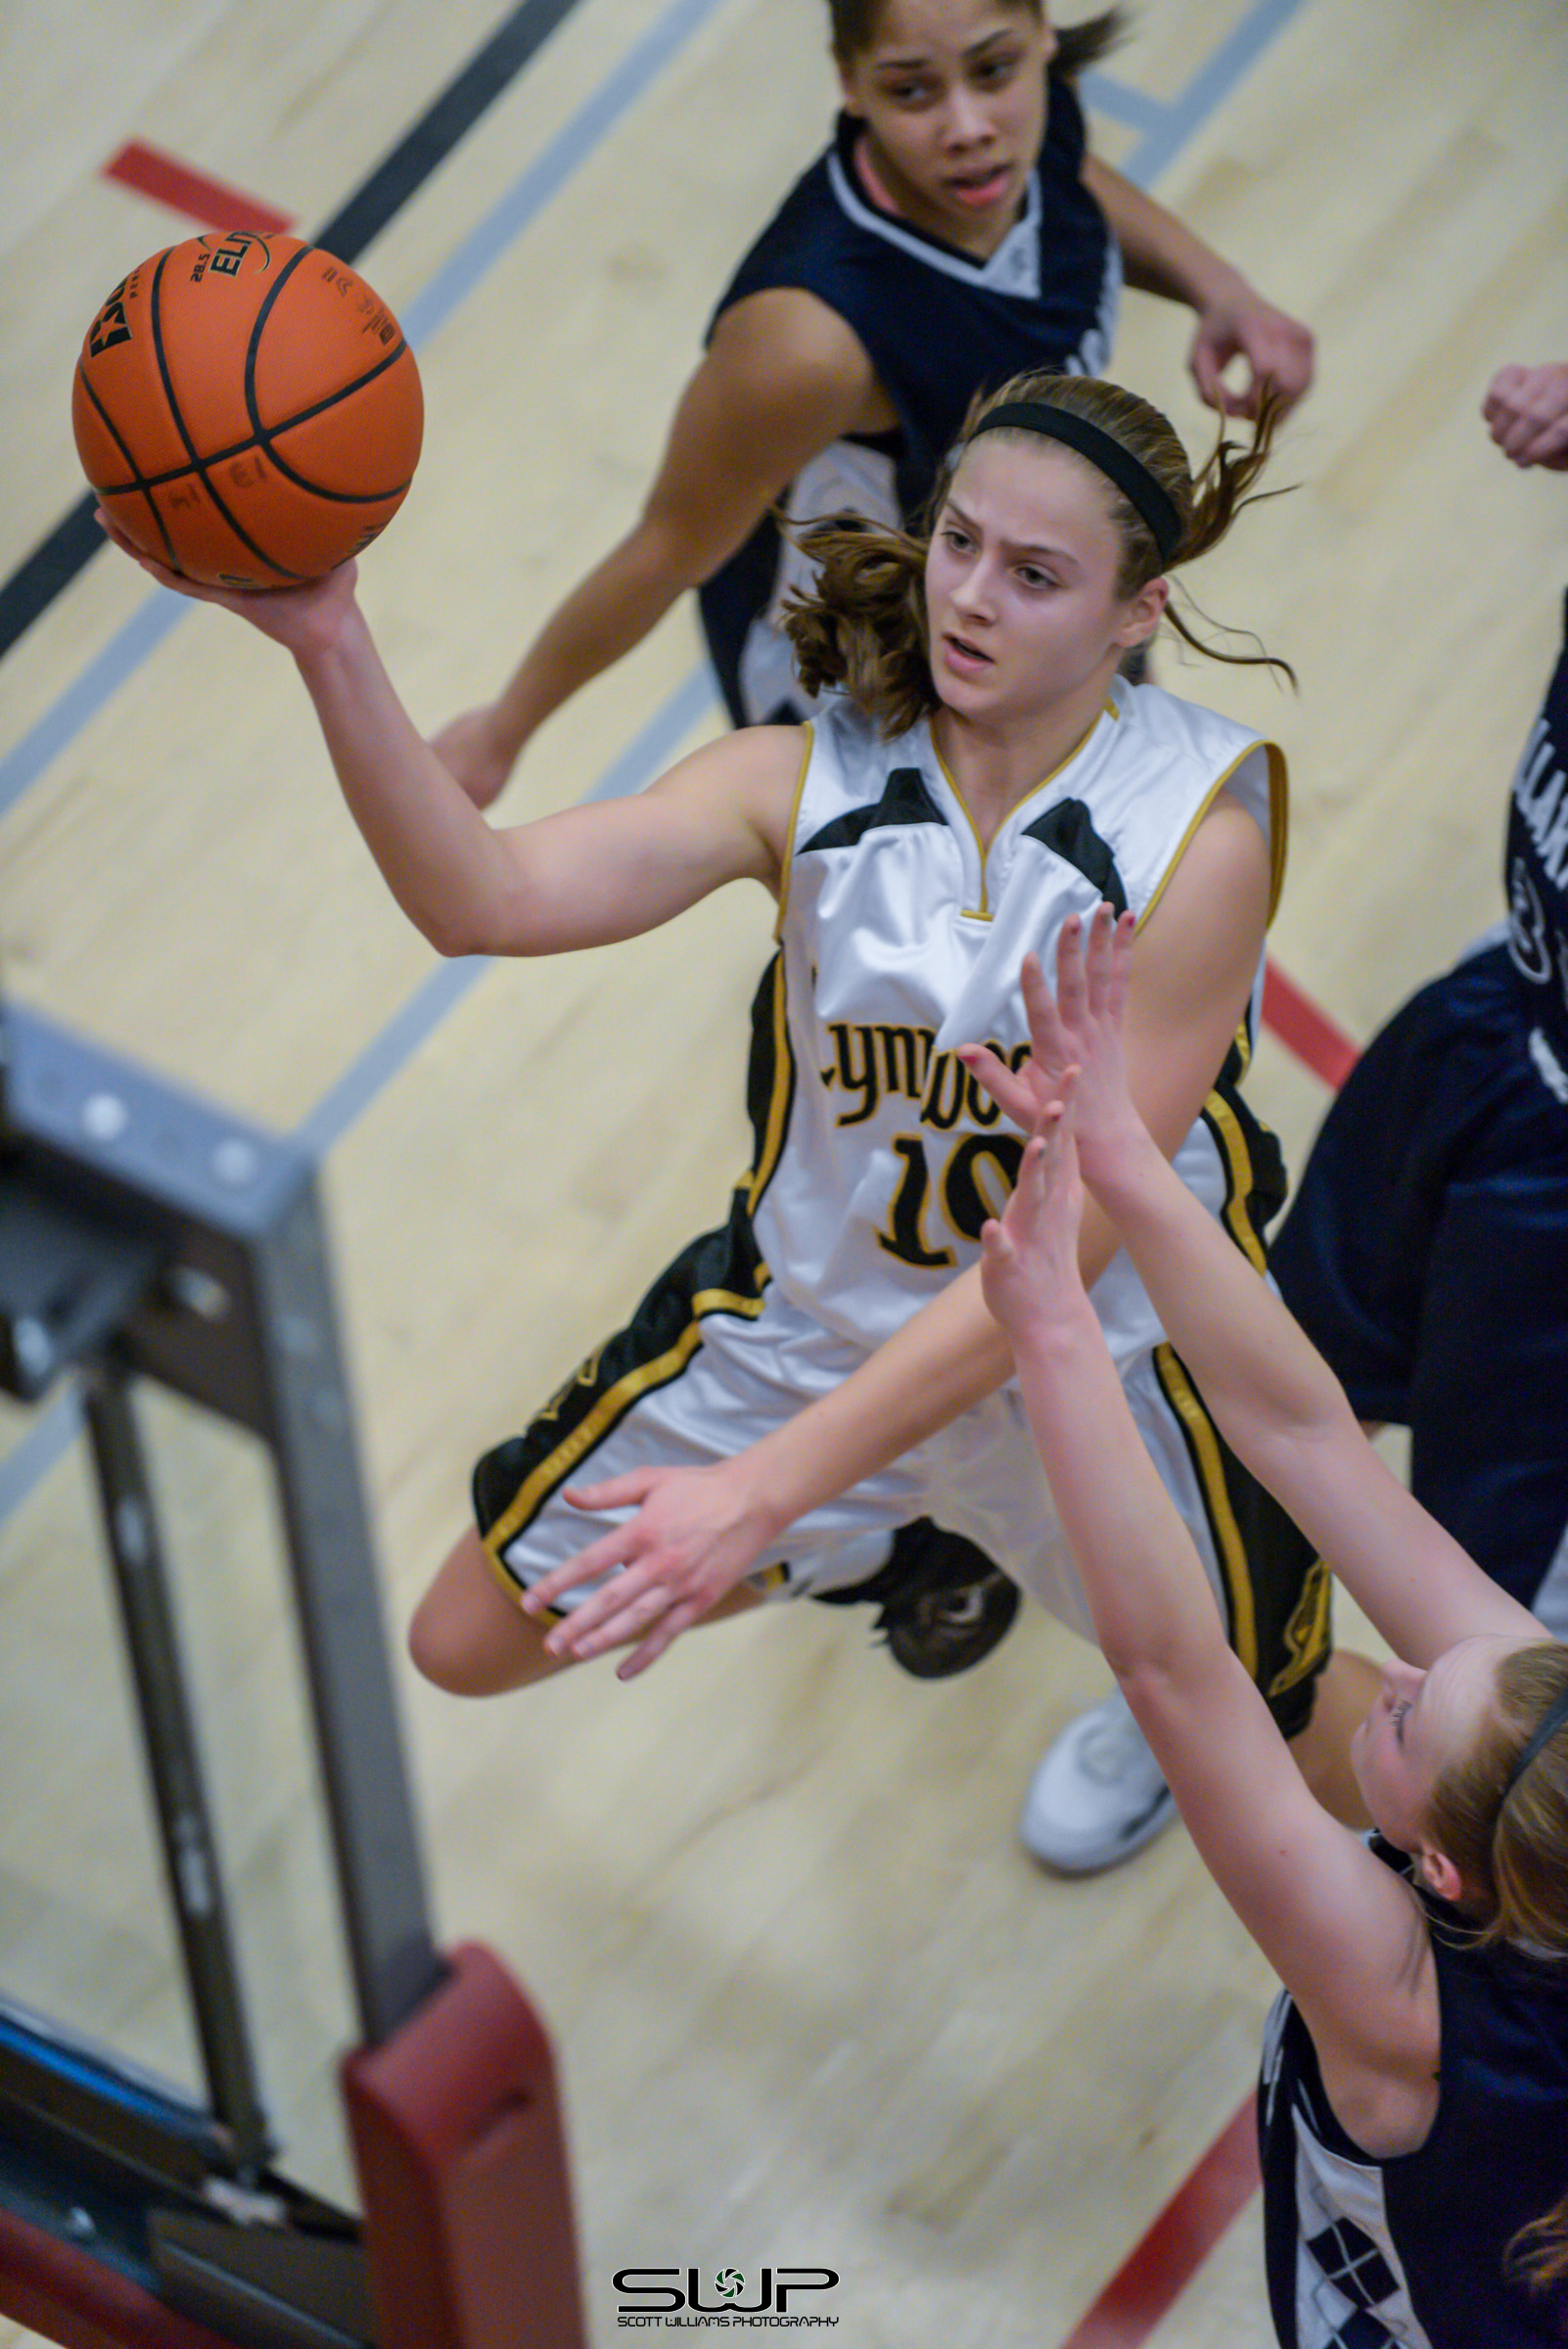 mikayla-pivec-elevates-in-lane-for-layup-against-bellarmine-prep-march-1-2014.jpg